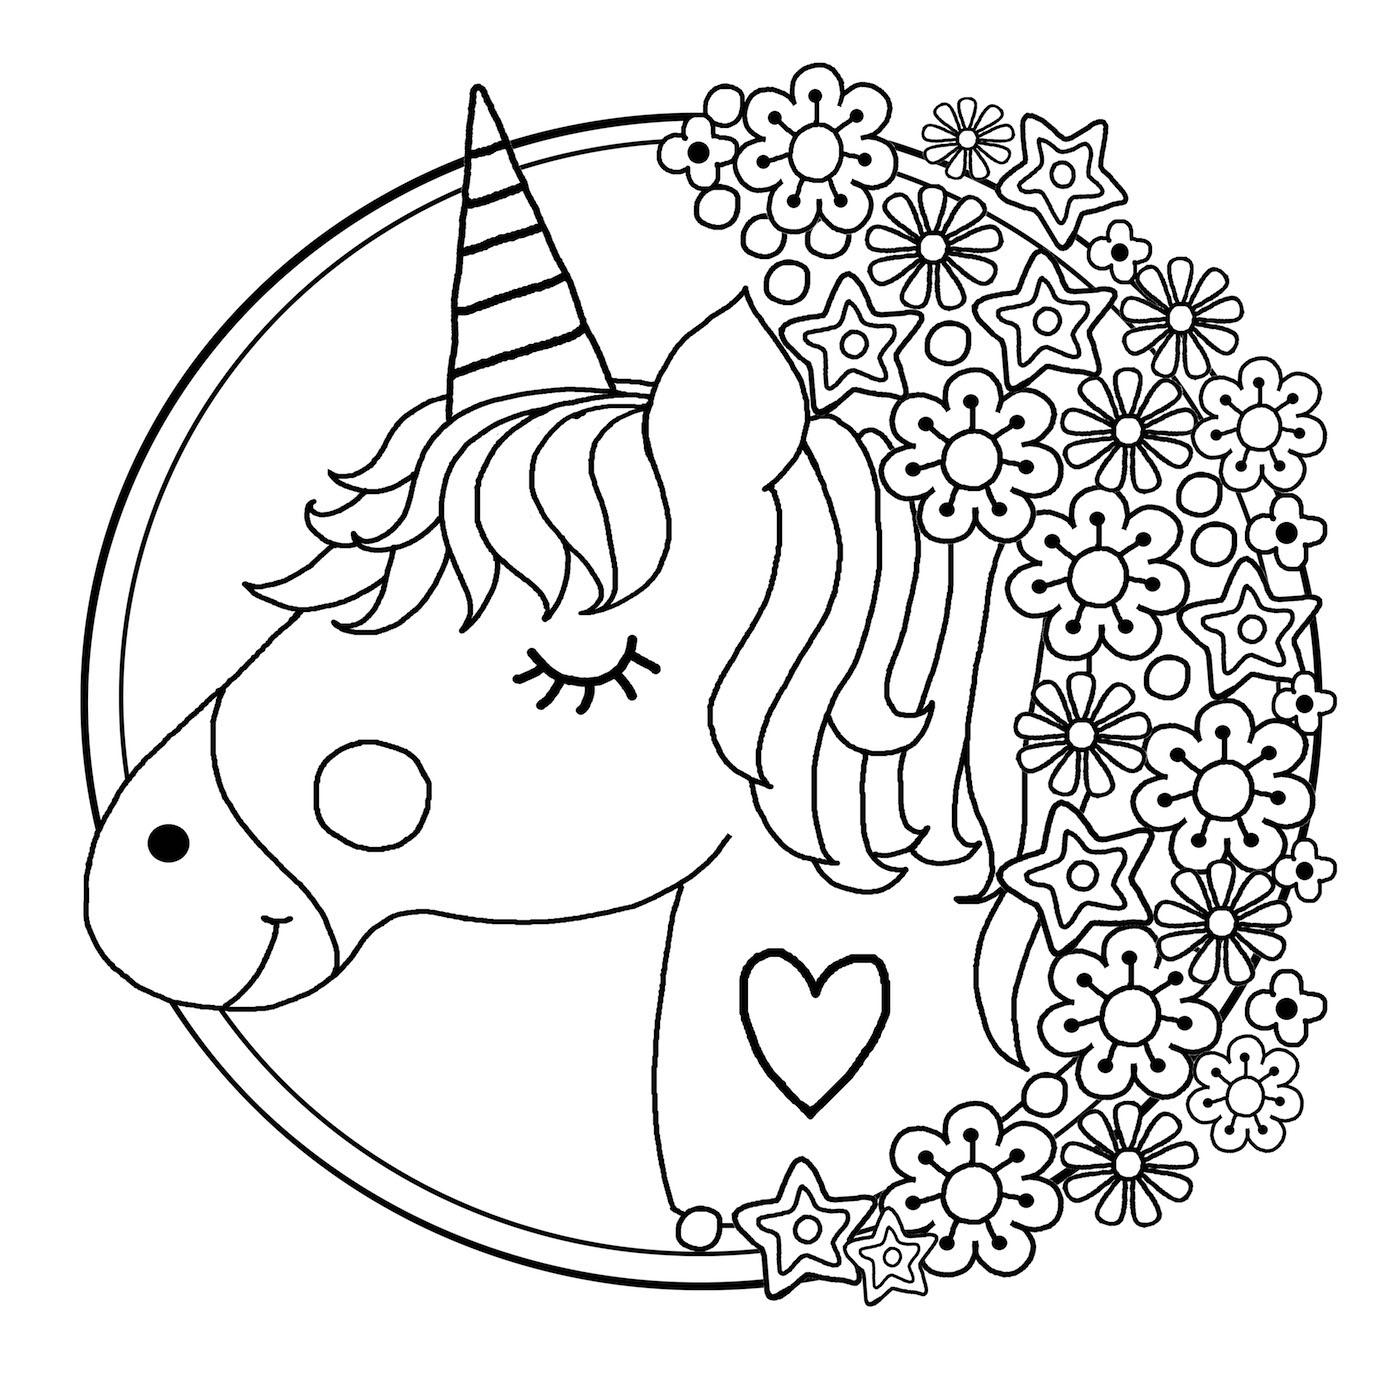 coloring unicorn kids drawing free printable unicorn coloring pages for kids drawing unicorn kids coloring